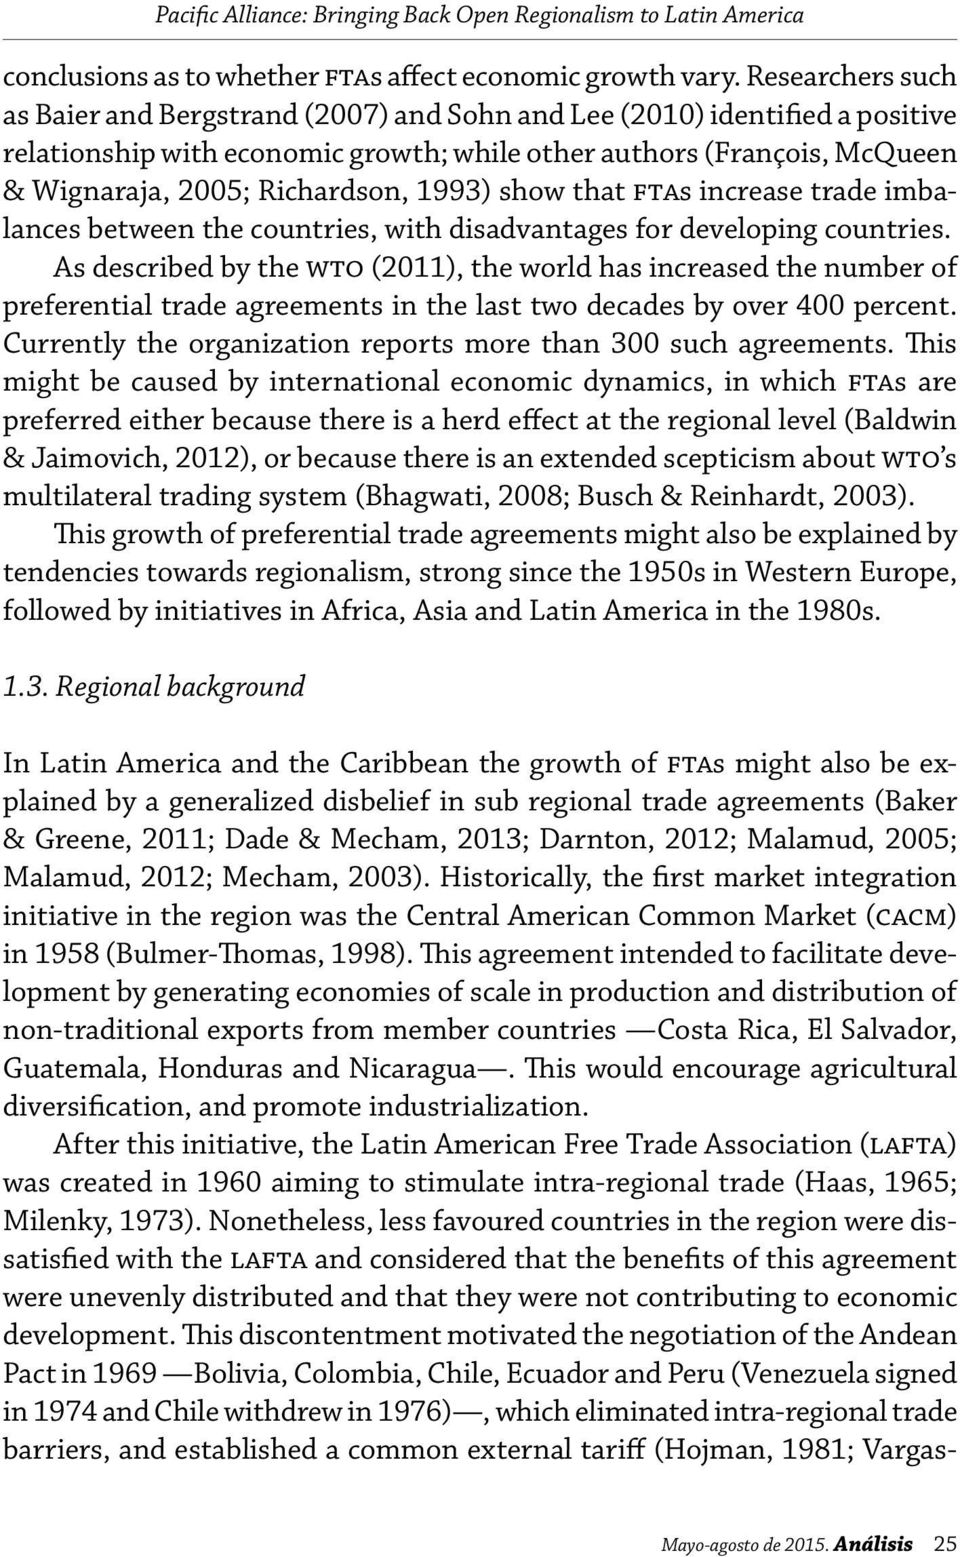 1993) show that ftas increase trade imbalances between the countries, with disadvantages for developing countries.